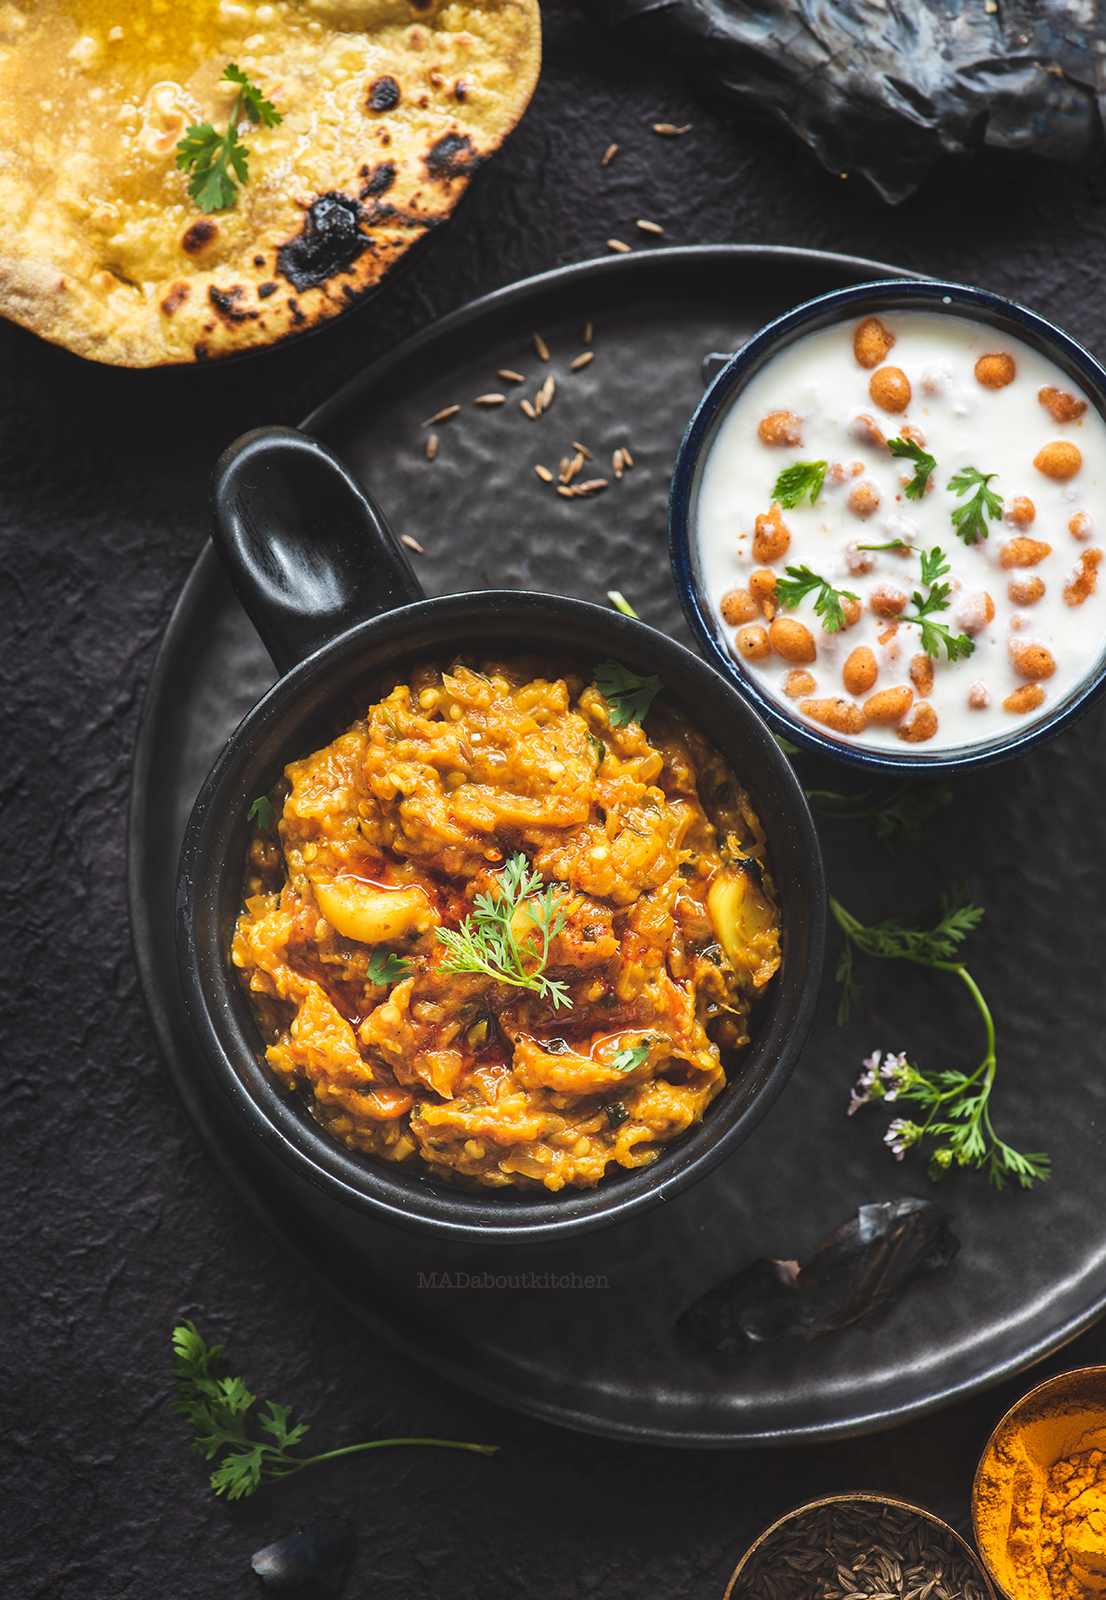 Baingan bharta is a popular Indian curry made by roasting the eggplant . The flesh of the smoky eggplant is mashed and then cooked with spices.